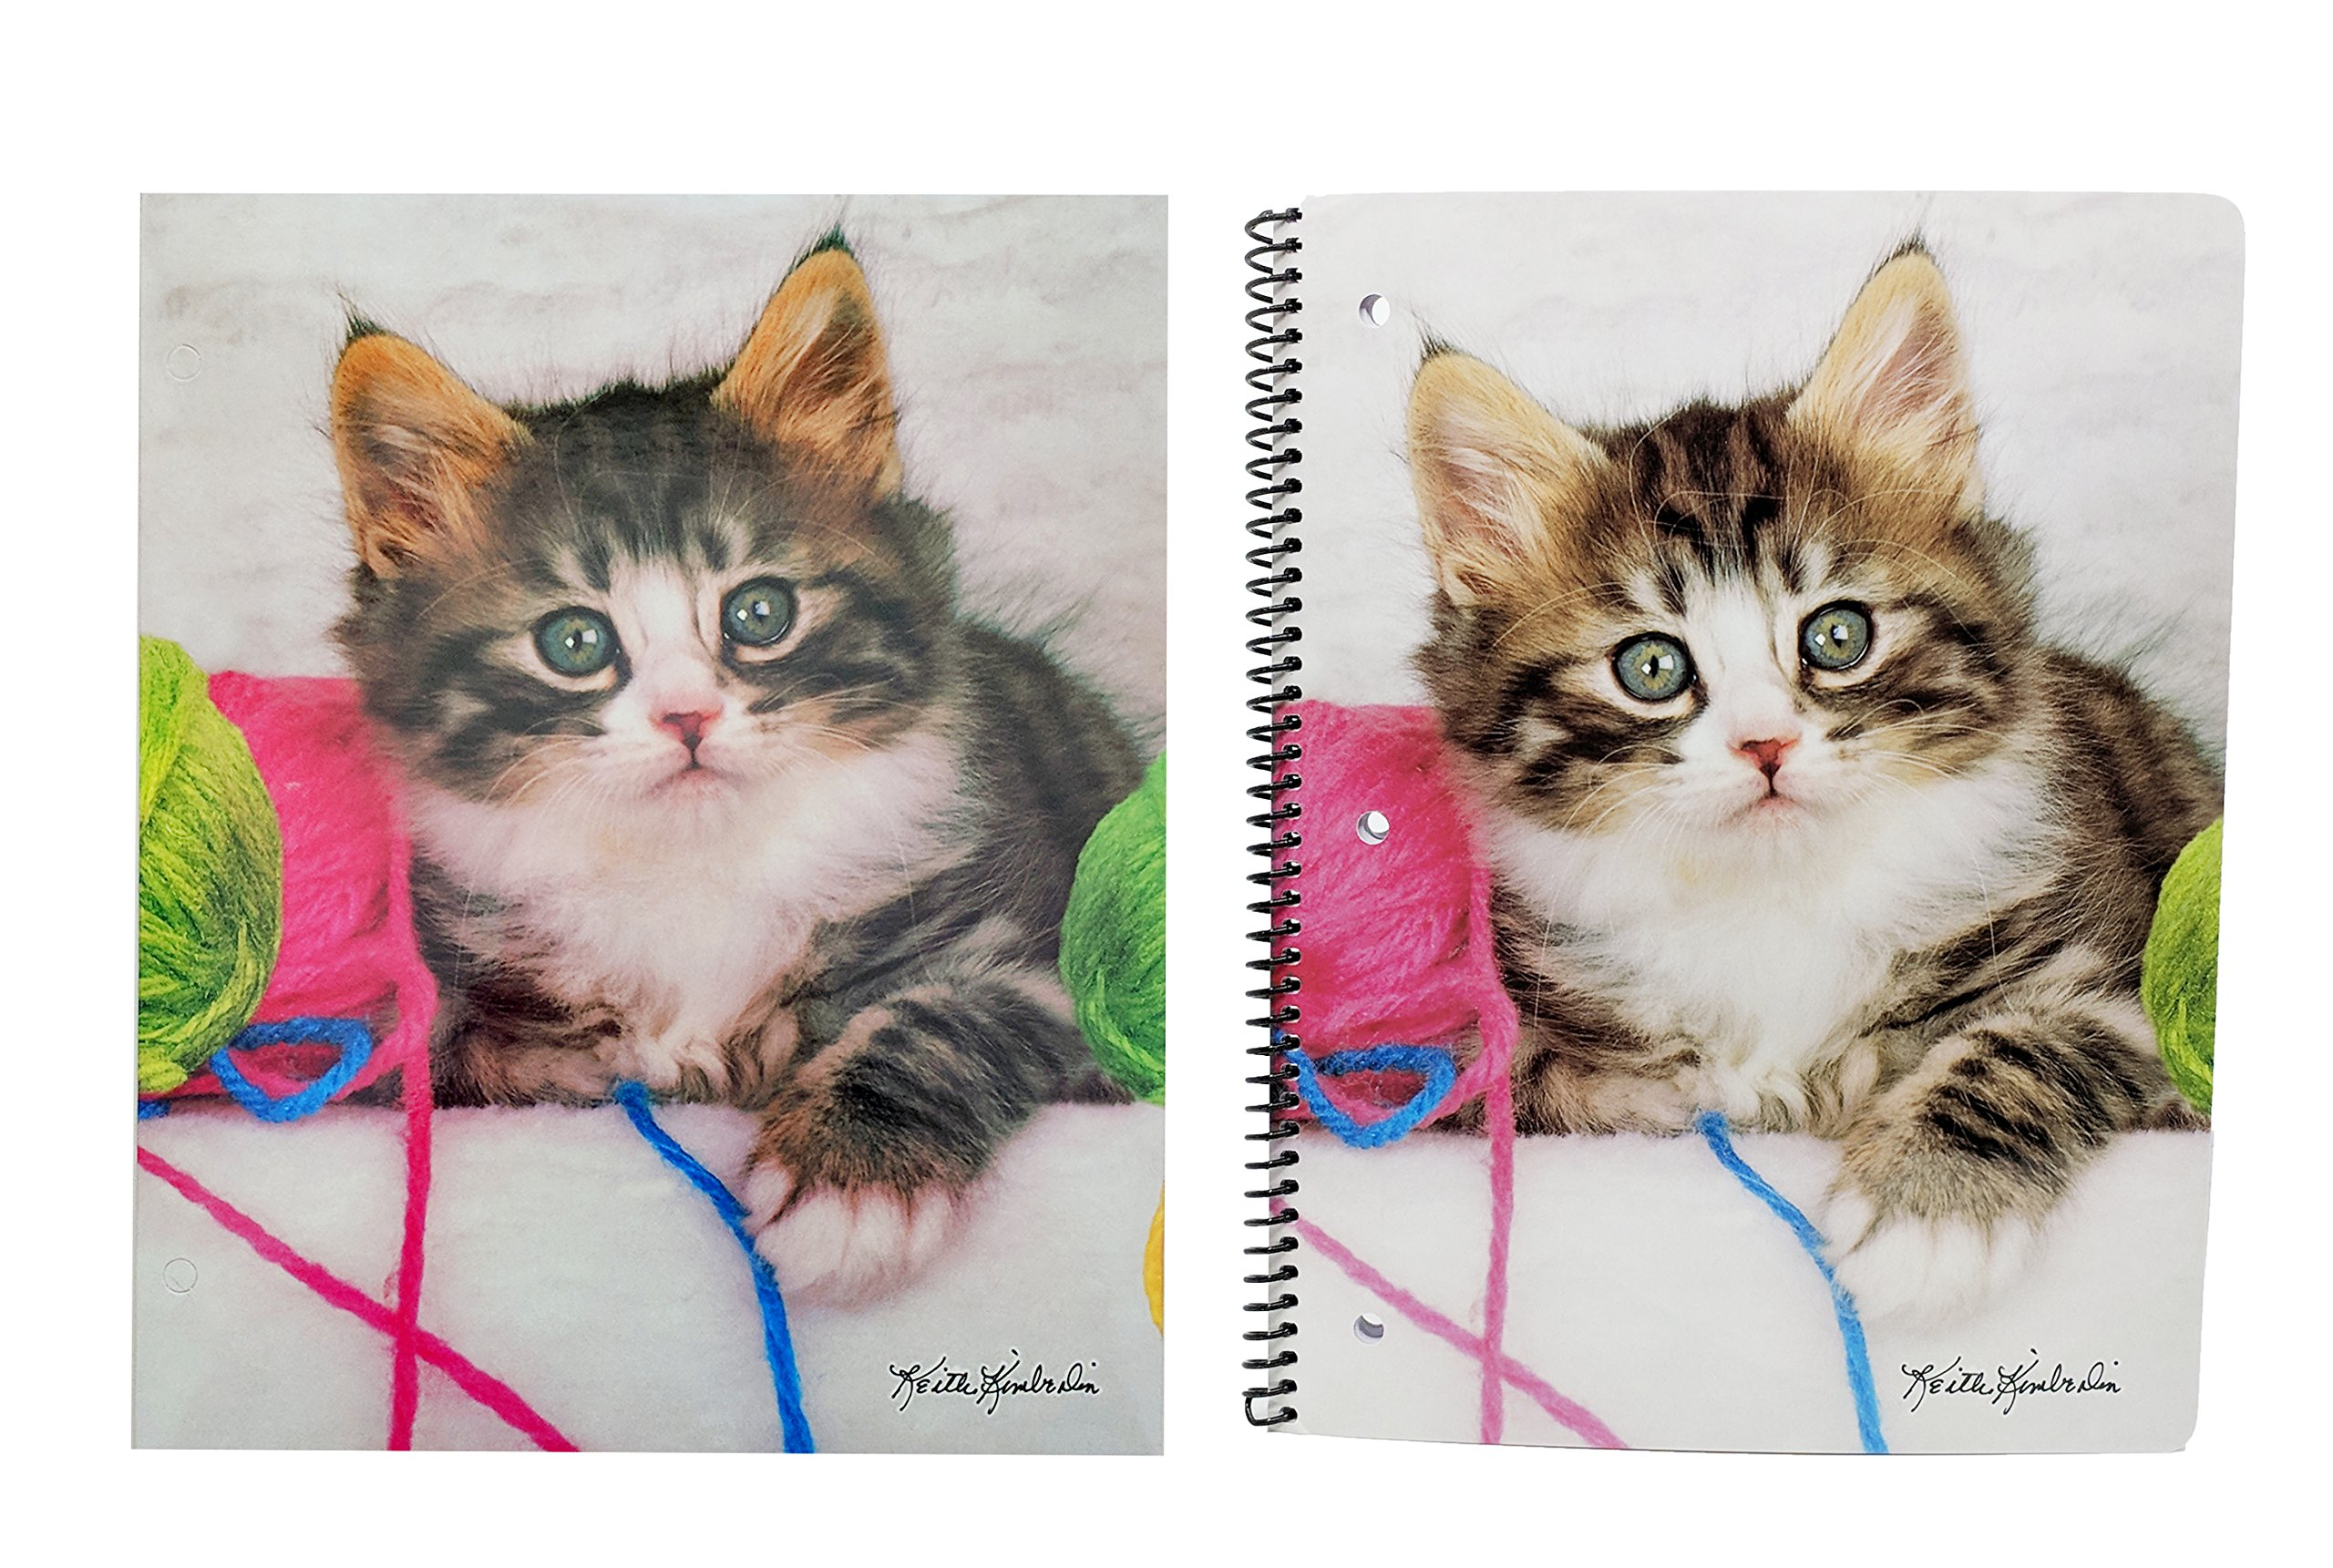 Cute Puppy Or Kitten Back to School Set – Pocket Folder and Composition Notebook (Sweet Kittens)